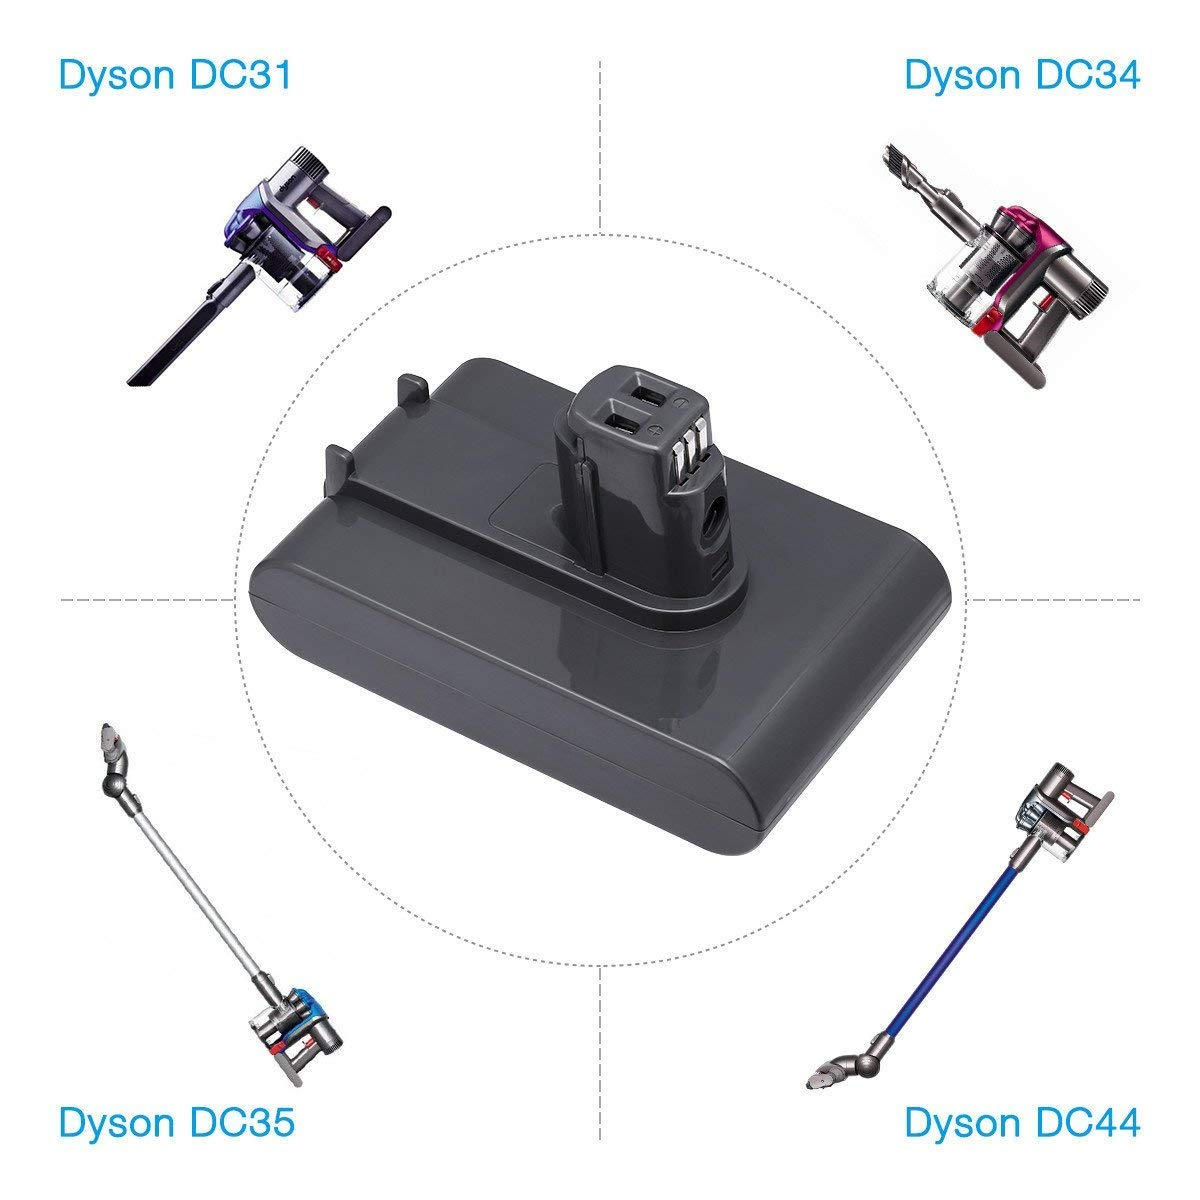 Powerextra 22.2V 3000mAh Dyson DC35 Replacement Battery for Dyson DC31 DC34 DC44 (Not Fit Type B, DC44 MK2) 917083-01 Handheld Vacuum Cleaner